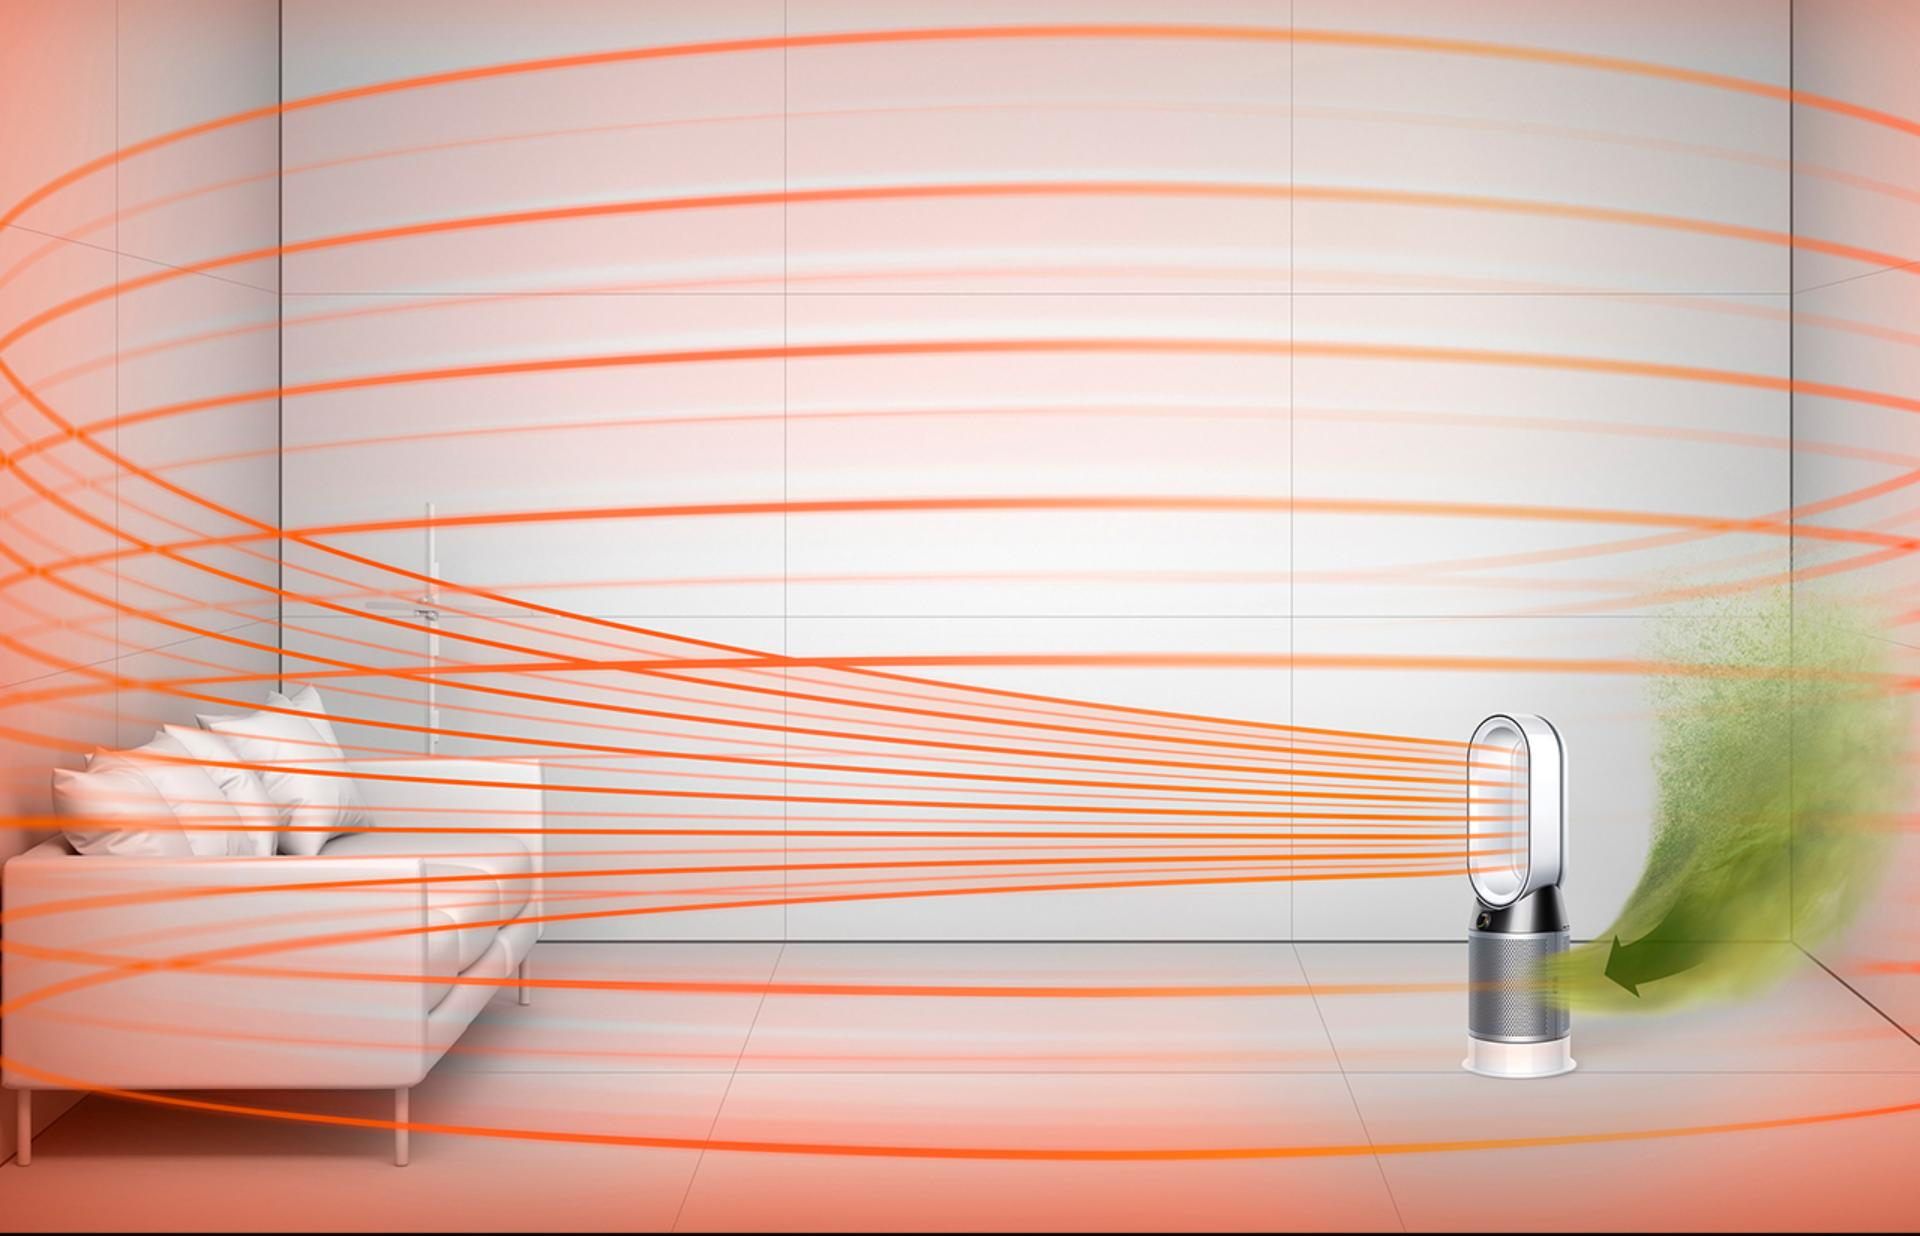 Dyson purifier fan heater circulating heat around the room evenly